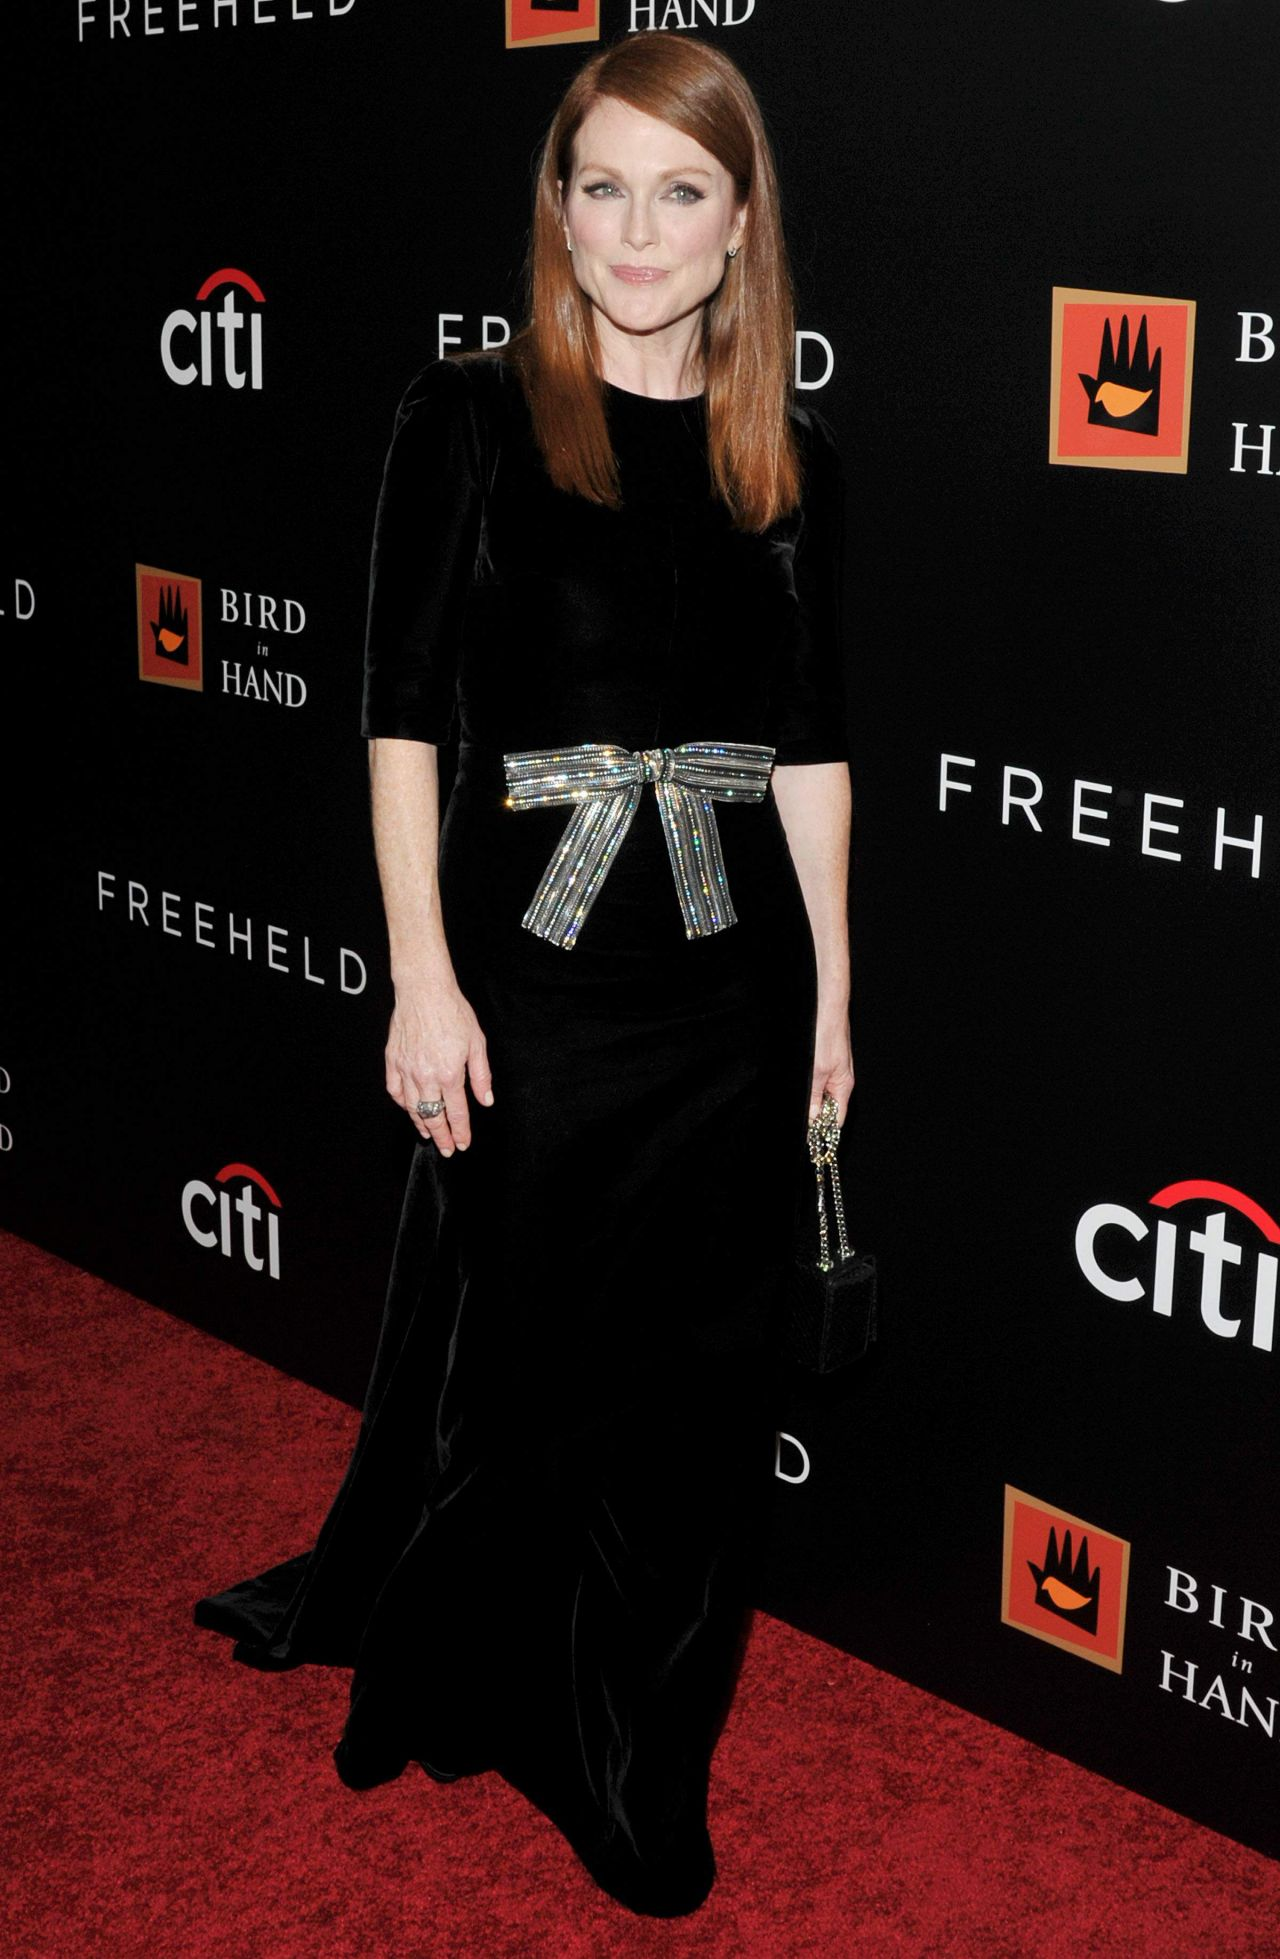 julianne-moore-freeheld-premiere-in-new-york-city_1